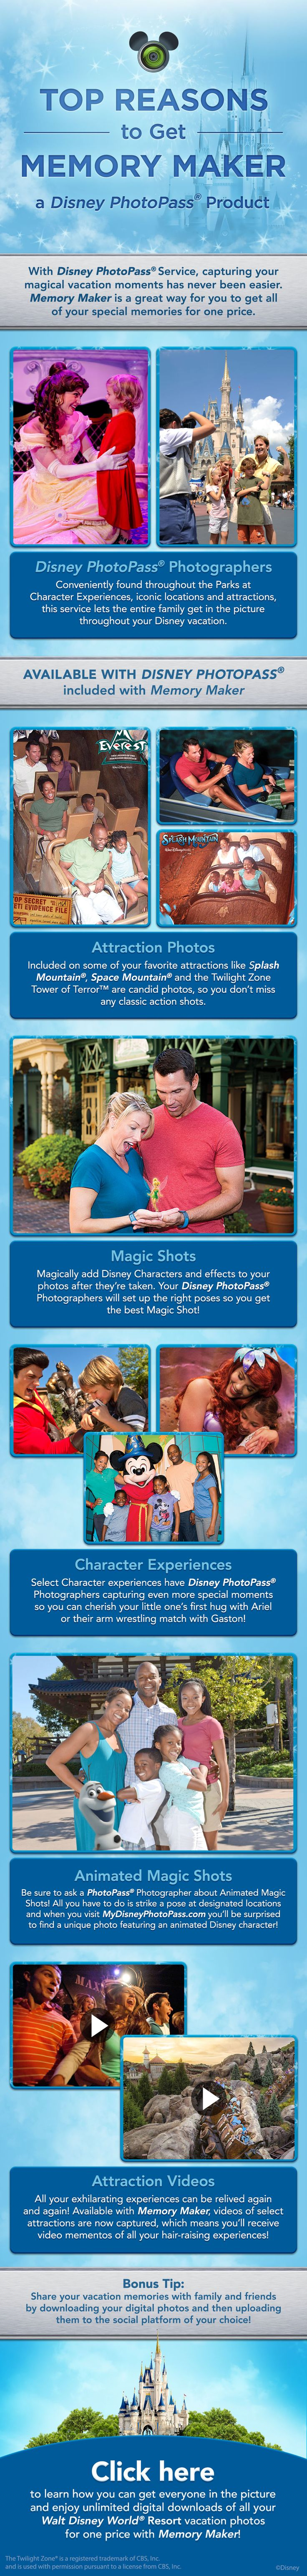 Learn how Memory Maker from Disney PhotoPass can capture all of your special moments from your Walt Disney World vacation!